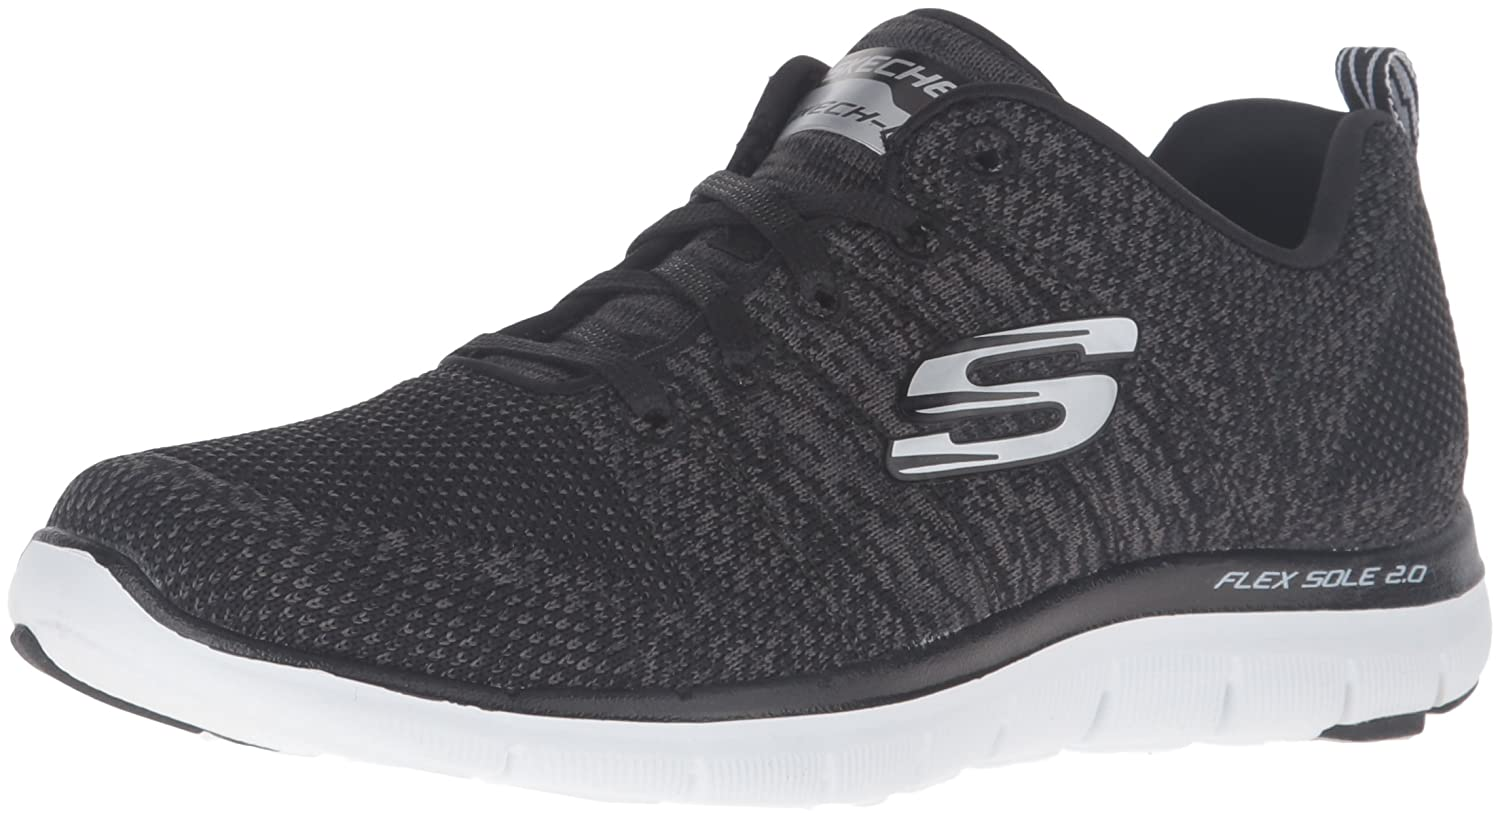 eefebba7c53b Skechers Sport Women s Flex Appeal 2.0 High Energy Fashion Sneaker Black  and White 8.5 B(M) US  Buy Online at Low Prices in India - Amazon.in